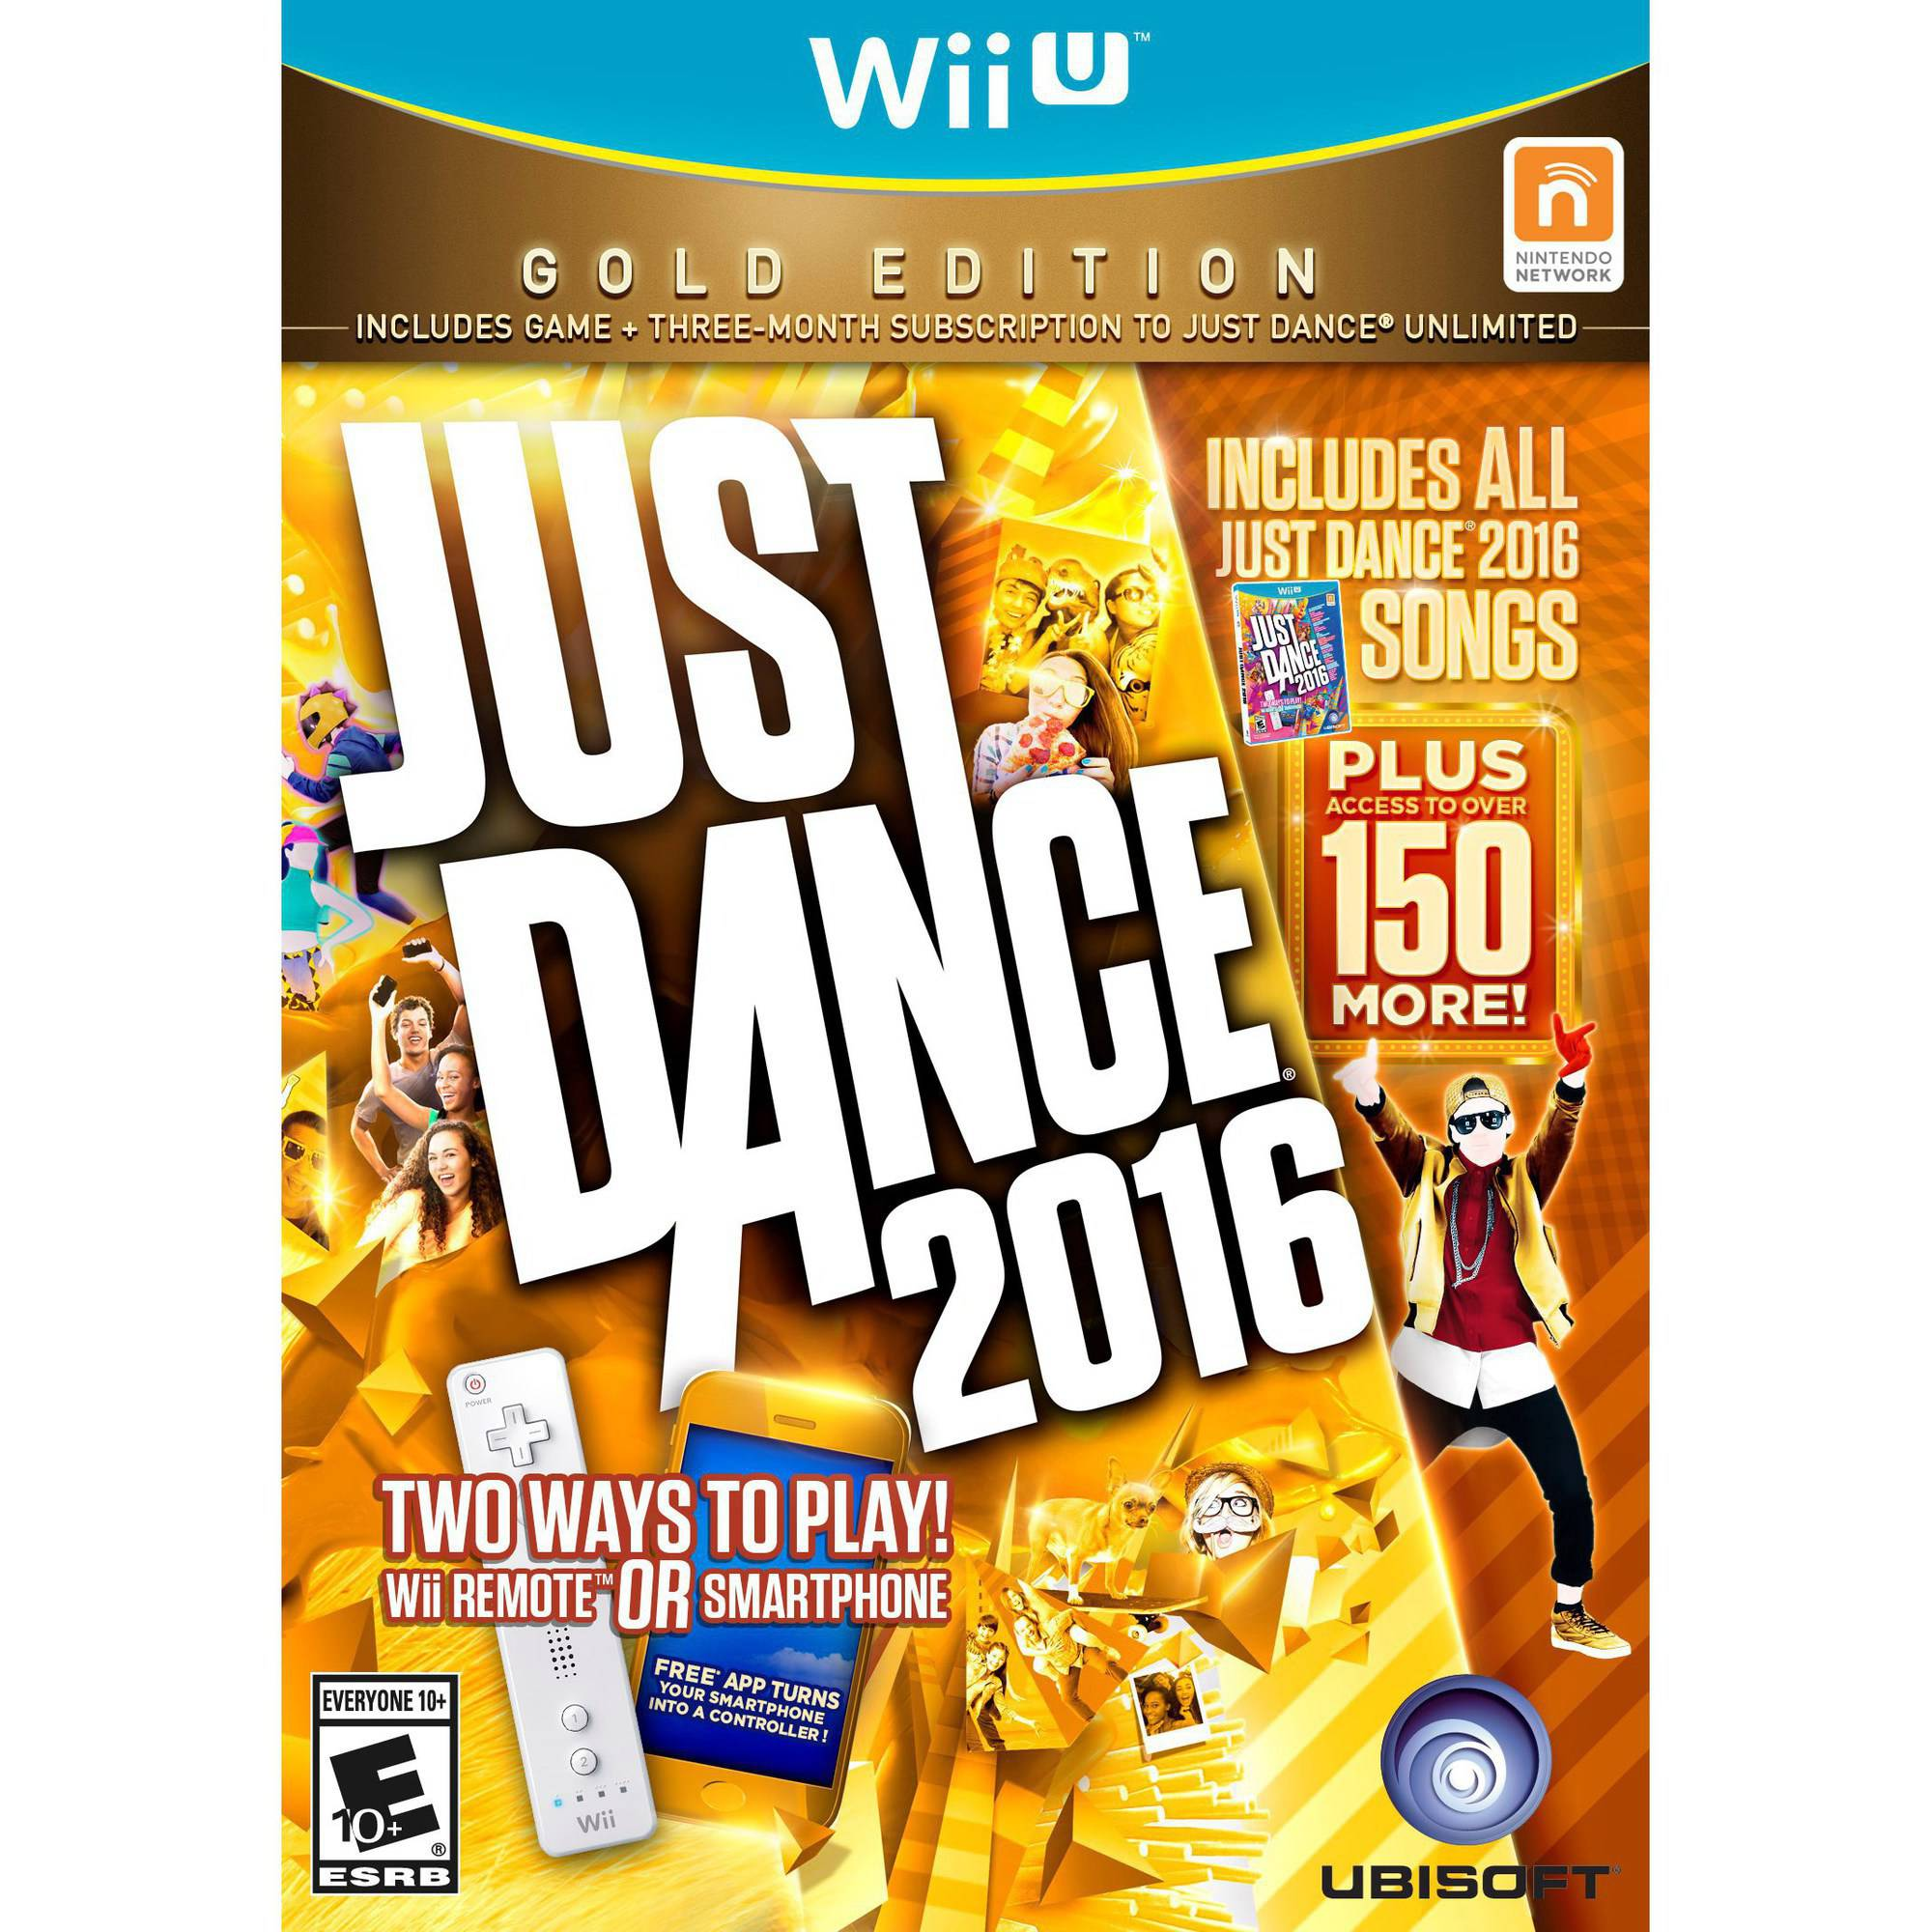 Just Dance 2016 Gold Edition (Wii U)